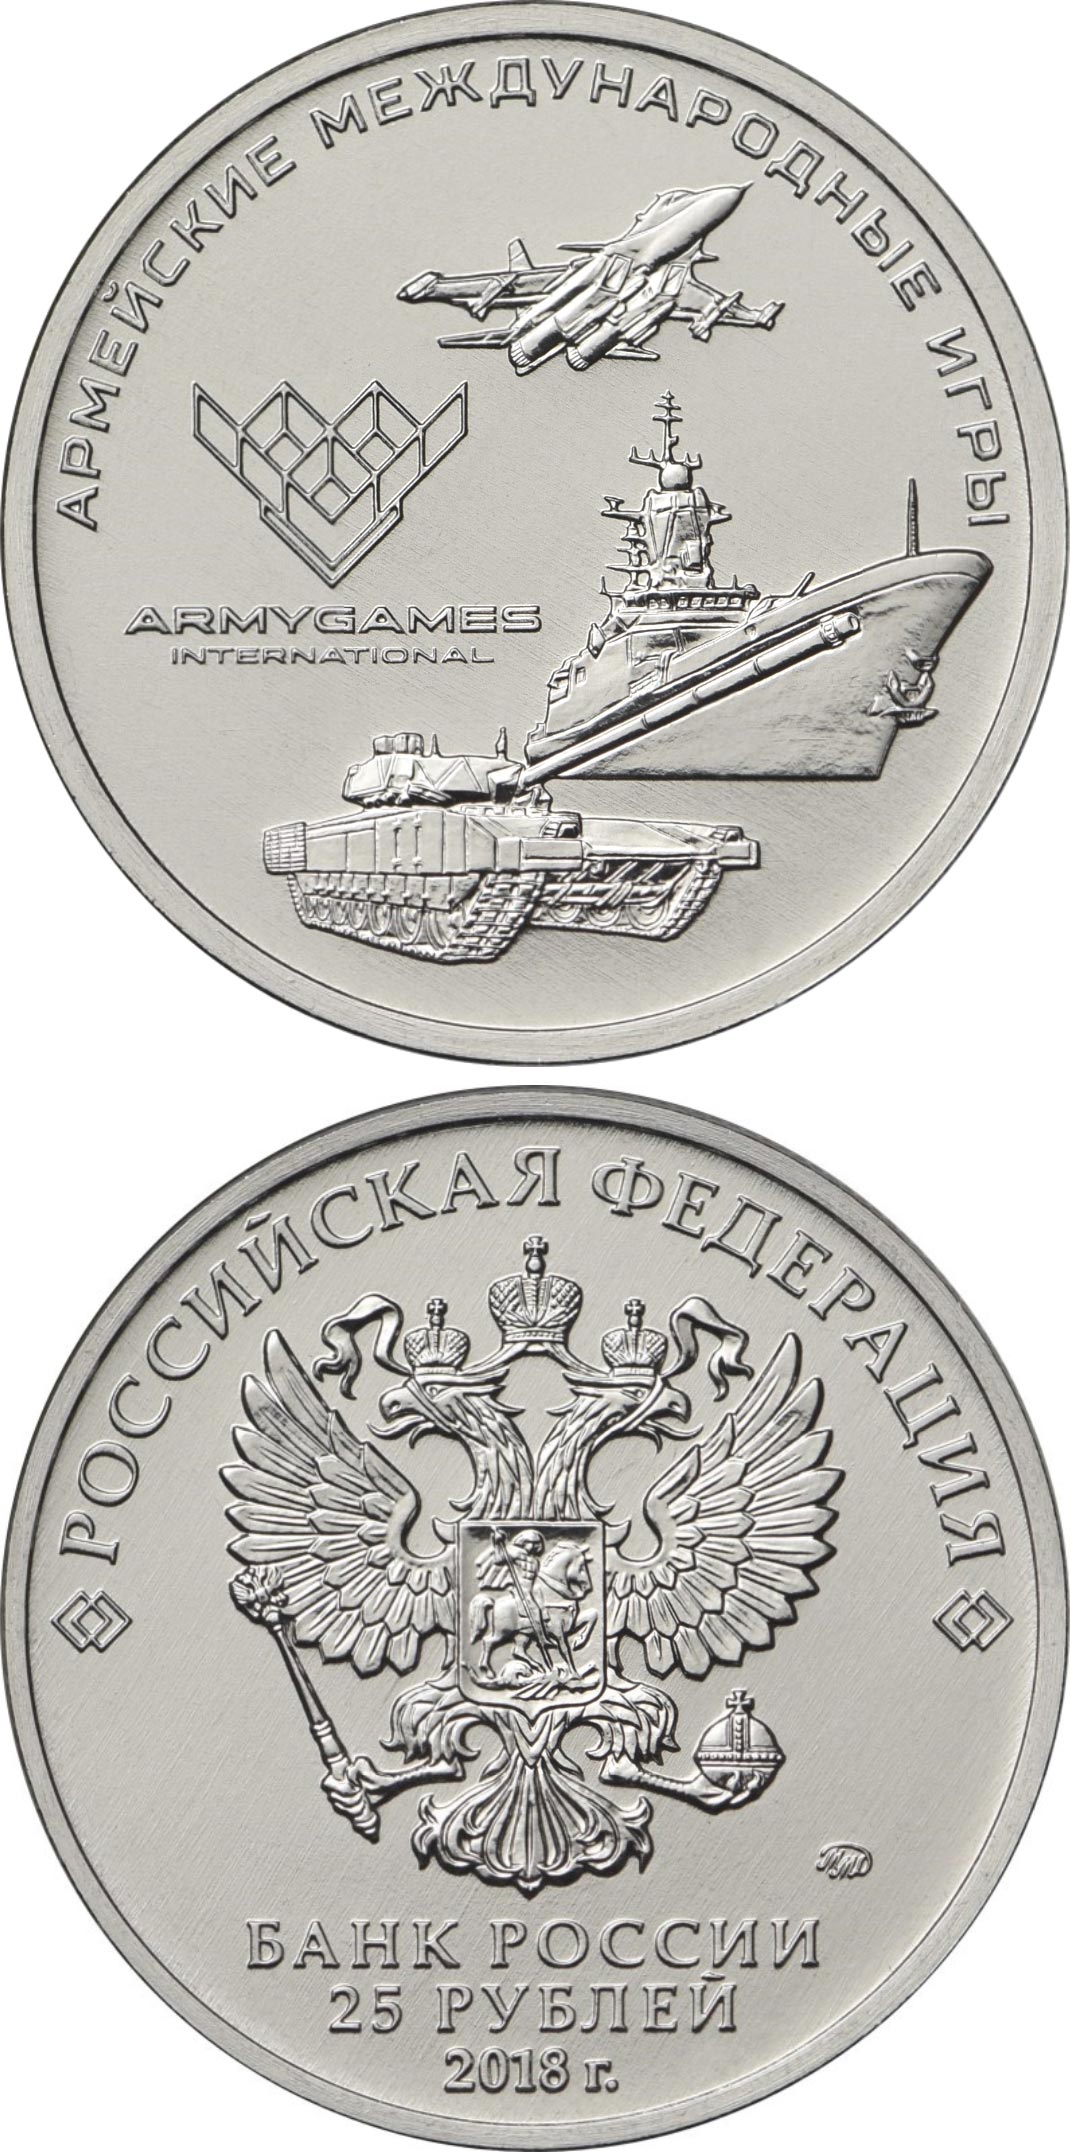 Image of 25 rubles coin – The International Army Games | Russia 2018.  The Copper–Nickel (CuNi) coin is of UNC quality.